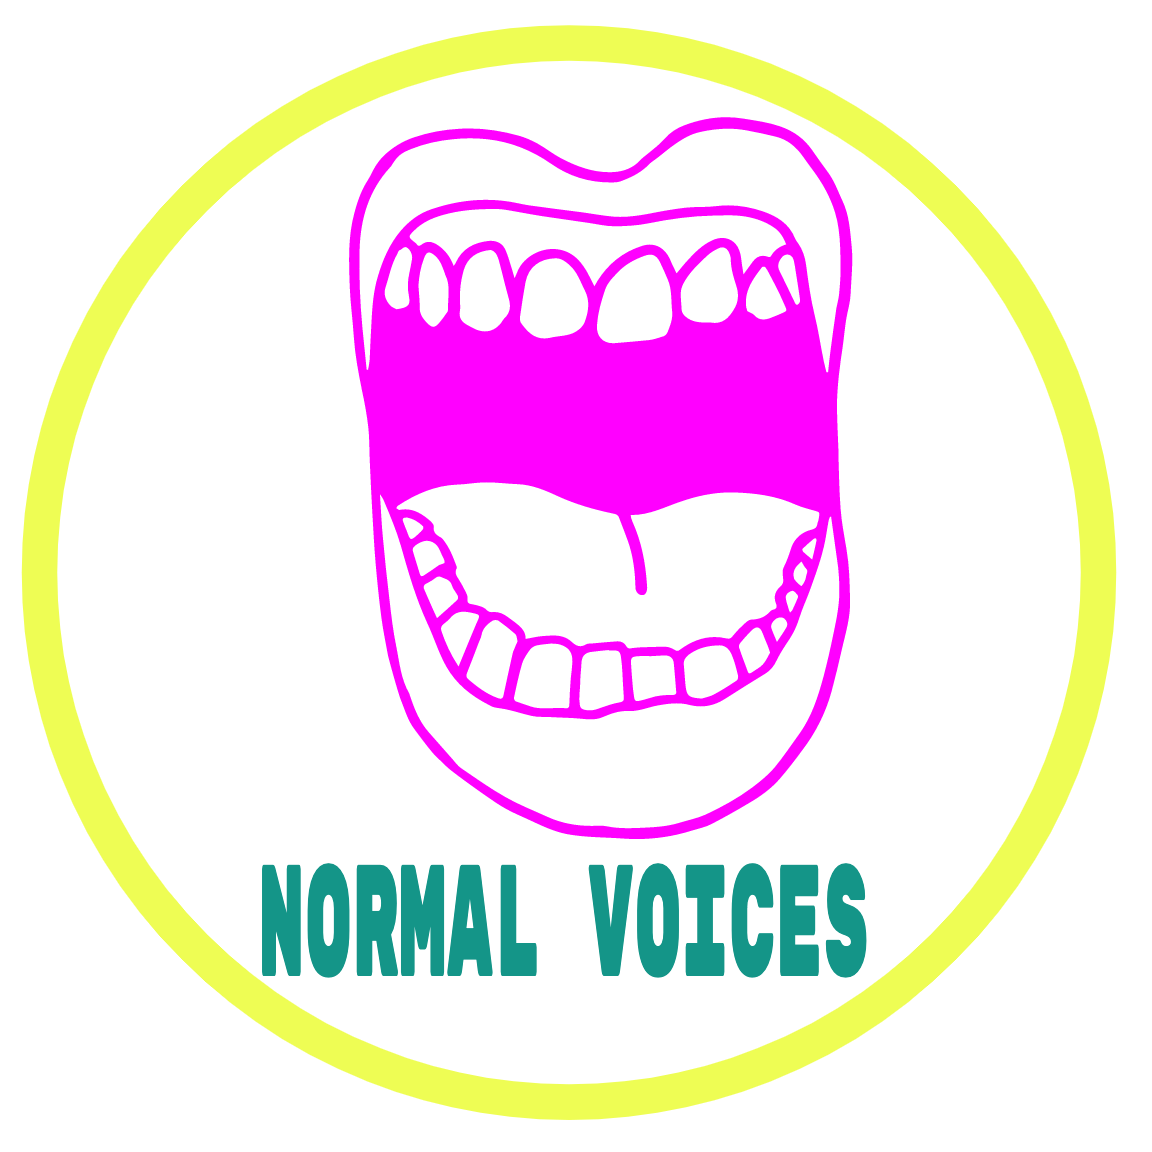 Normal voices